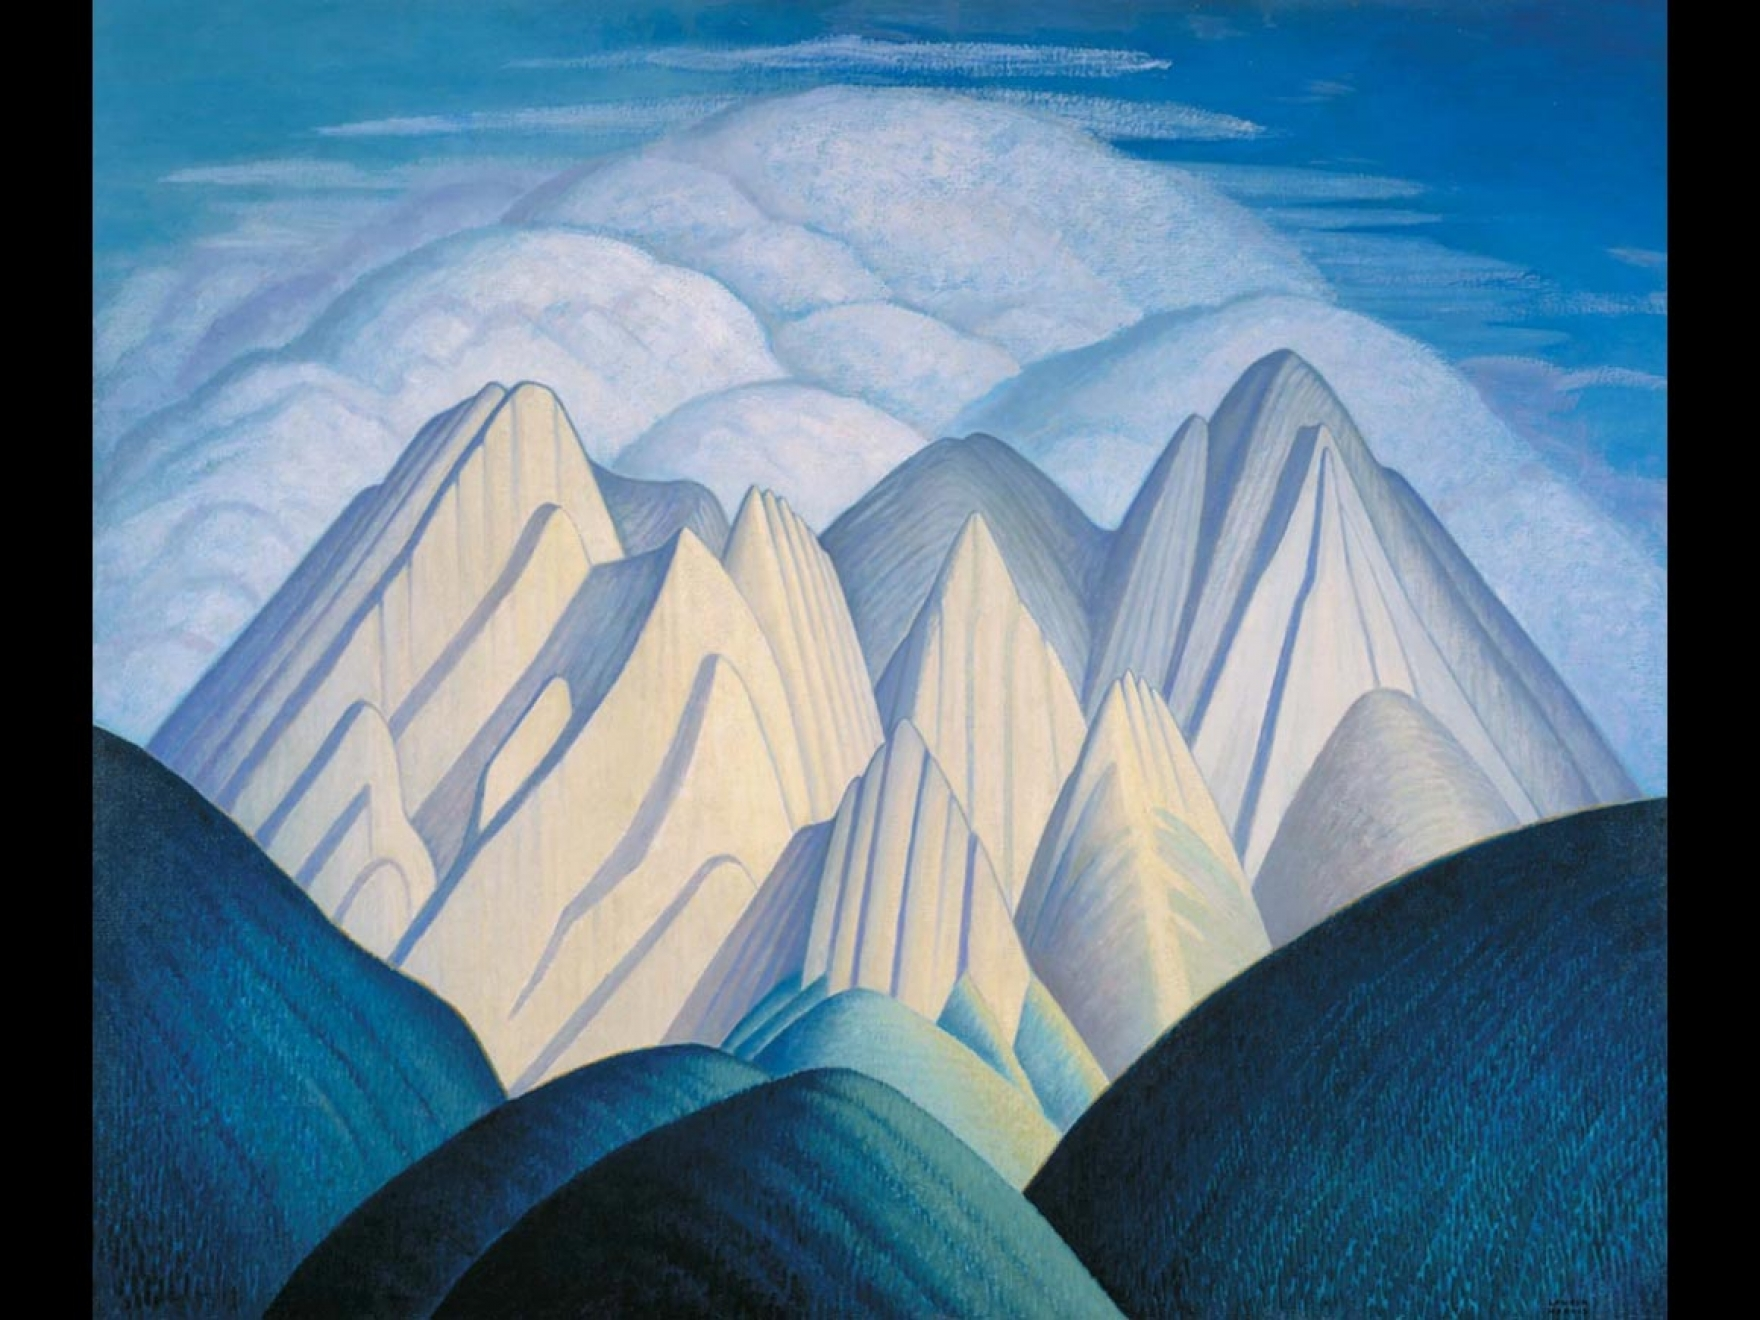 Lawren Harris, Untitled (Mountains near Jasper), 1934–40